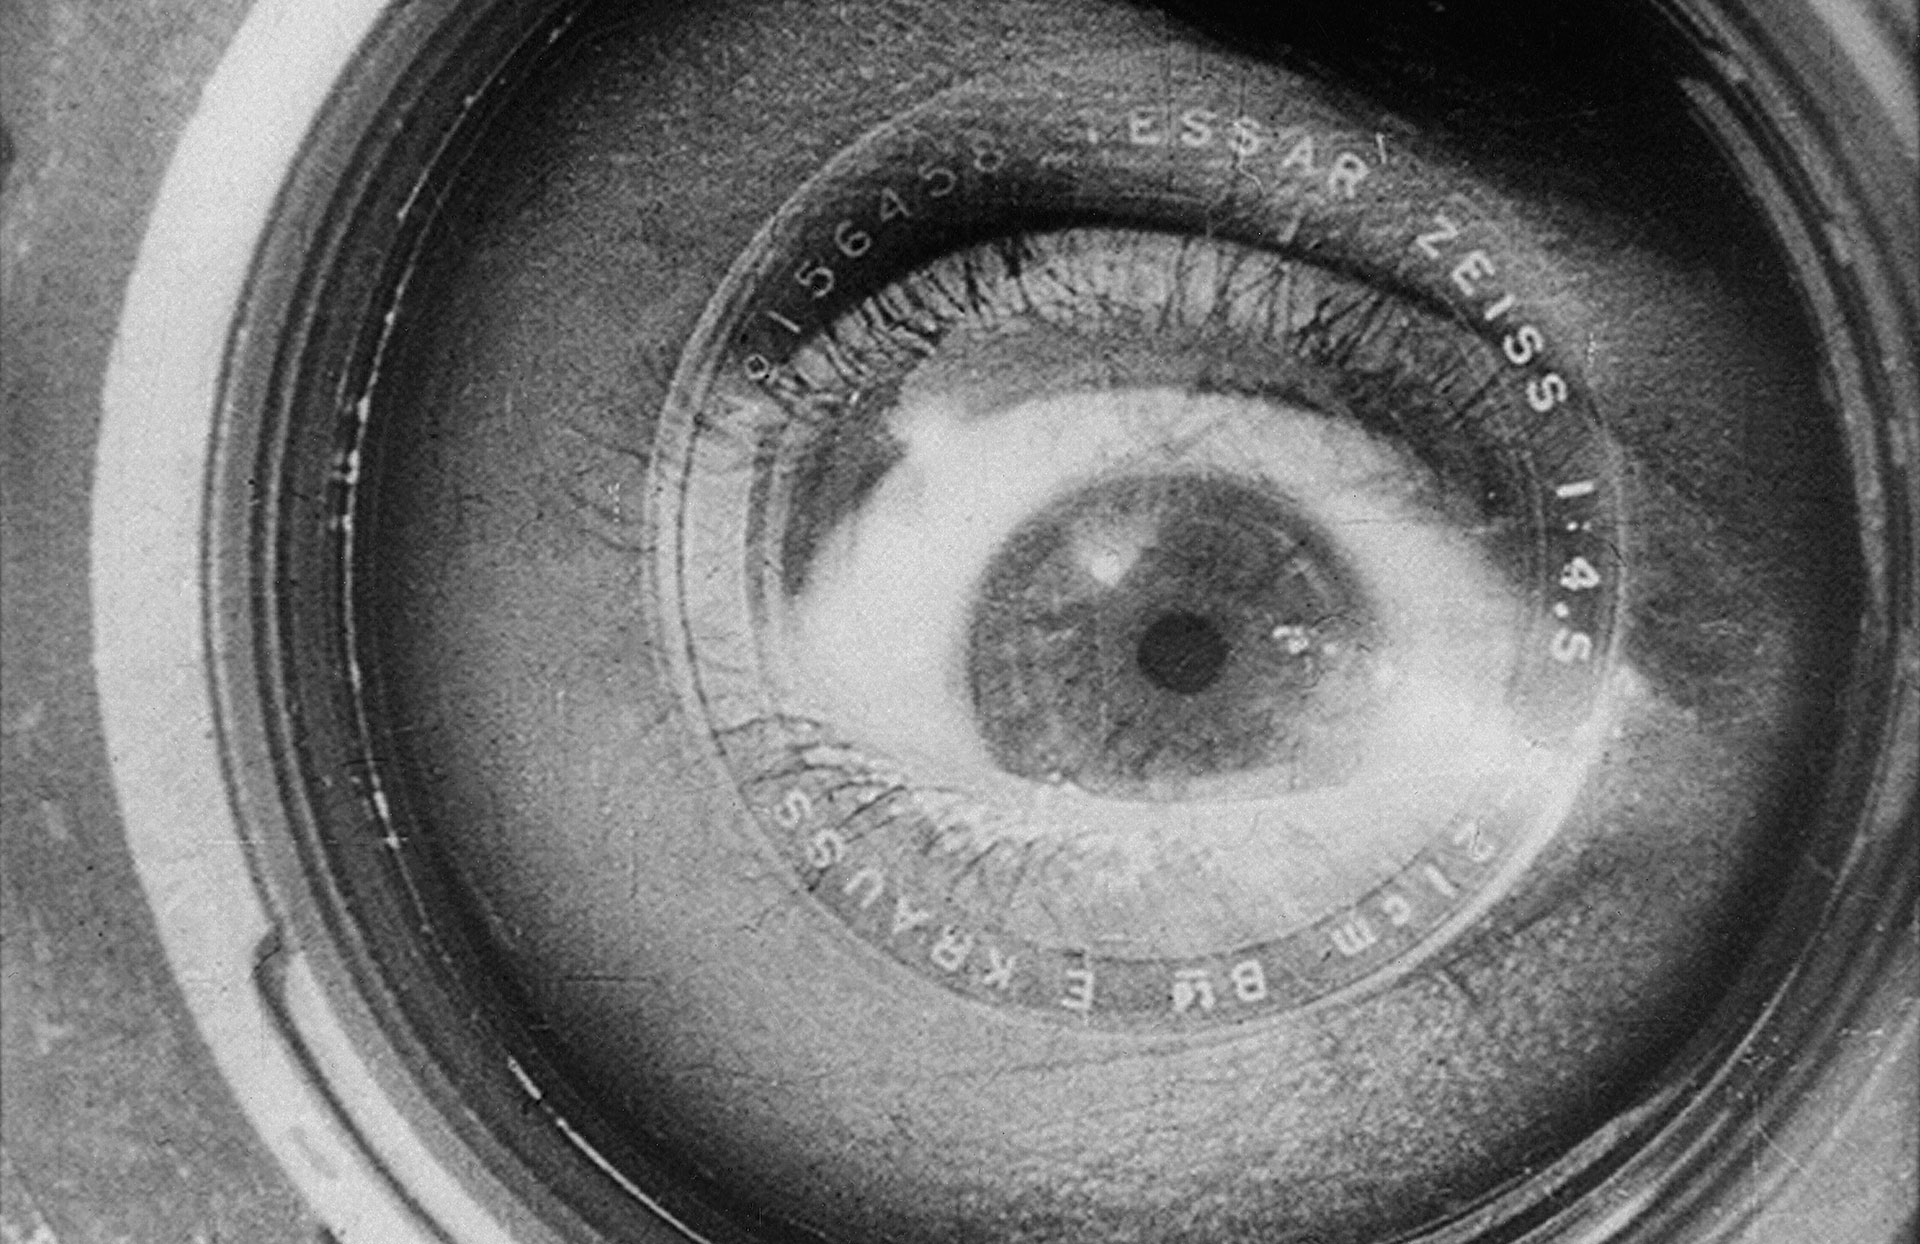 essay on the man with a movie camera The man with a movie camera is an experimental 1929 silent documentary film that was created in black and white by russian director dziga vertov.